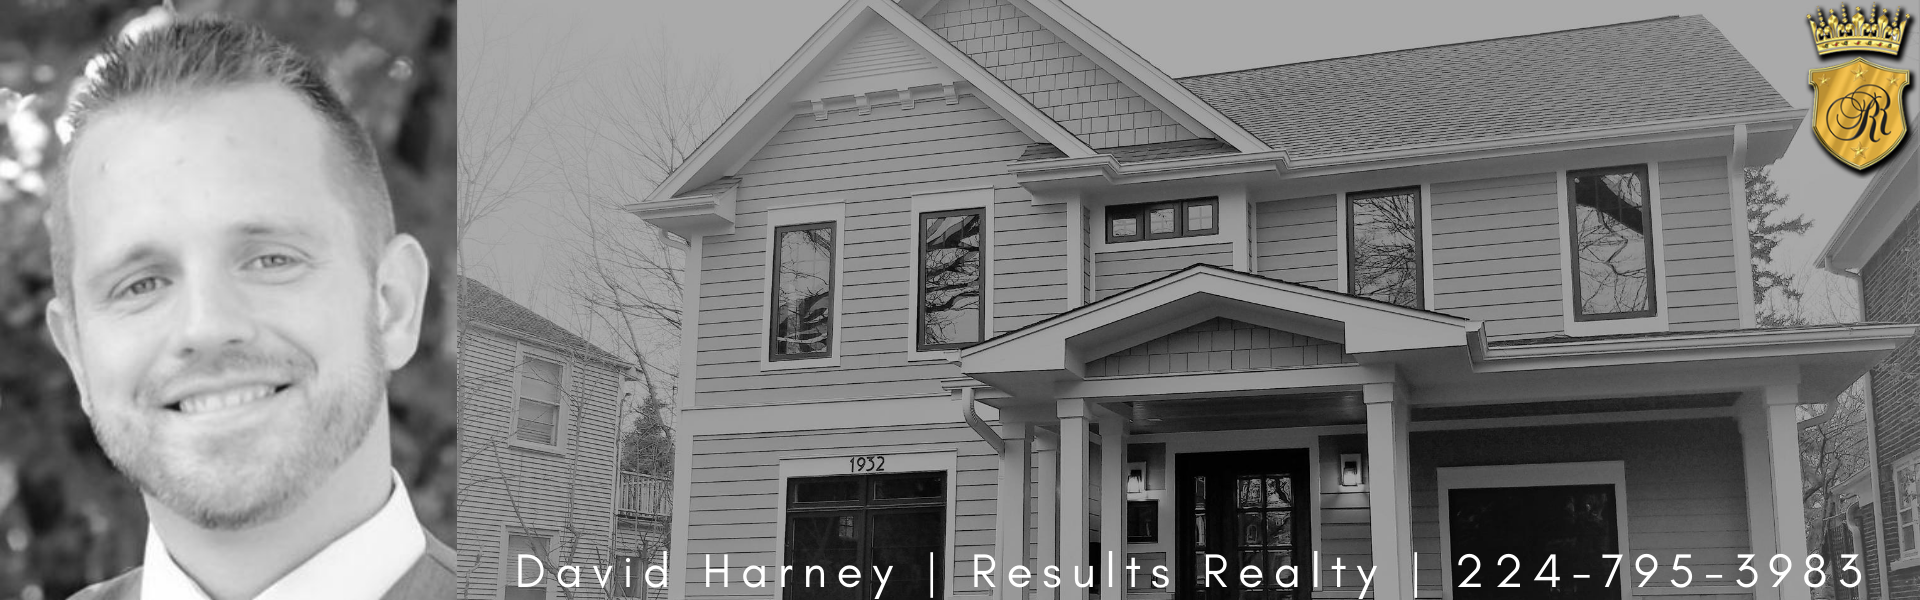 David Harney Realtor Results Realty Banner Picture